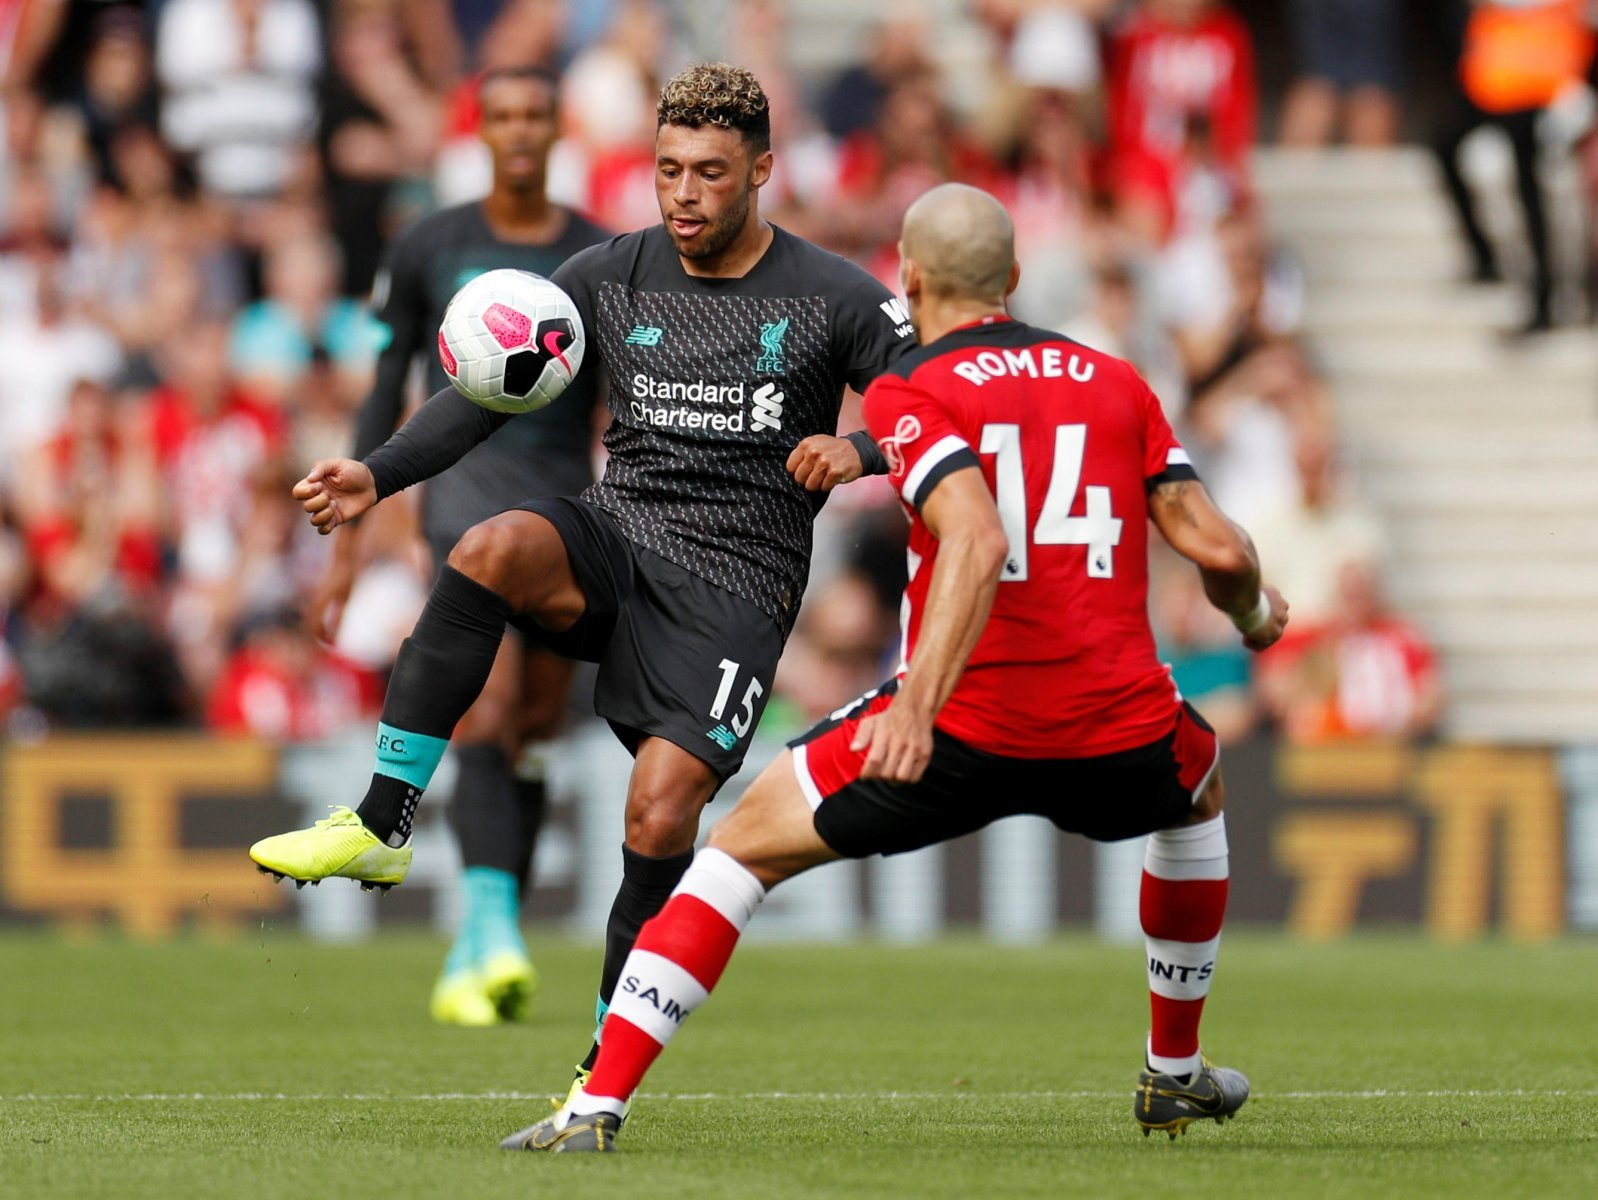 Unsung Hero: Liverpool's Alex Oxlade-Chamberlain produces dynamic display